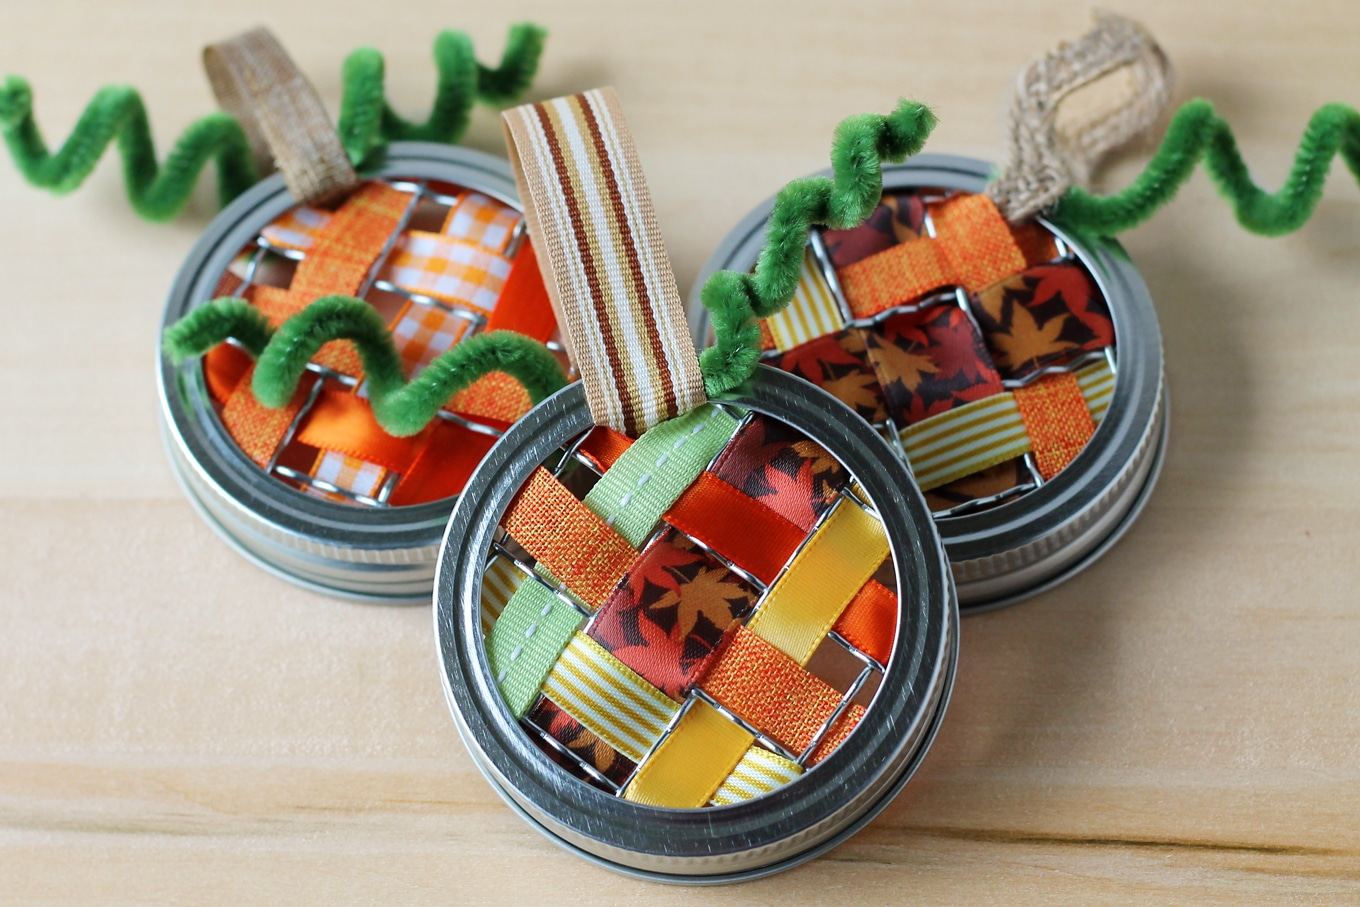 Just in time for fall, learn how to make vibrant pumpkin suncatchers with scraps of woven ribbon and mason jar lids. This weaving craft is perfect for kids!